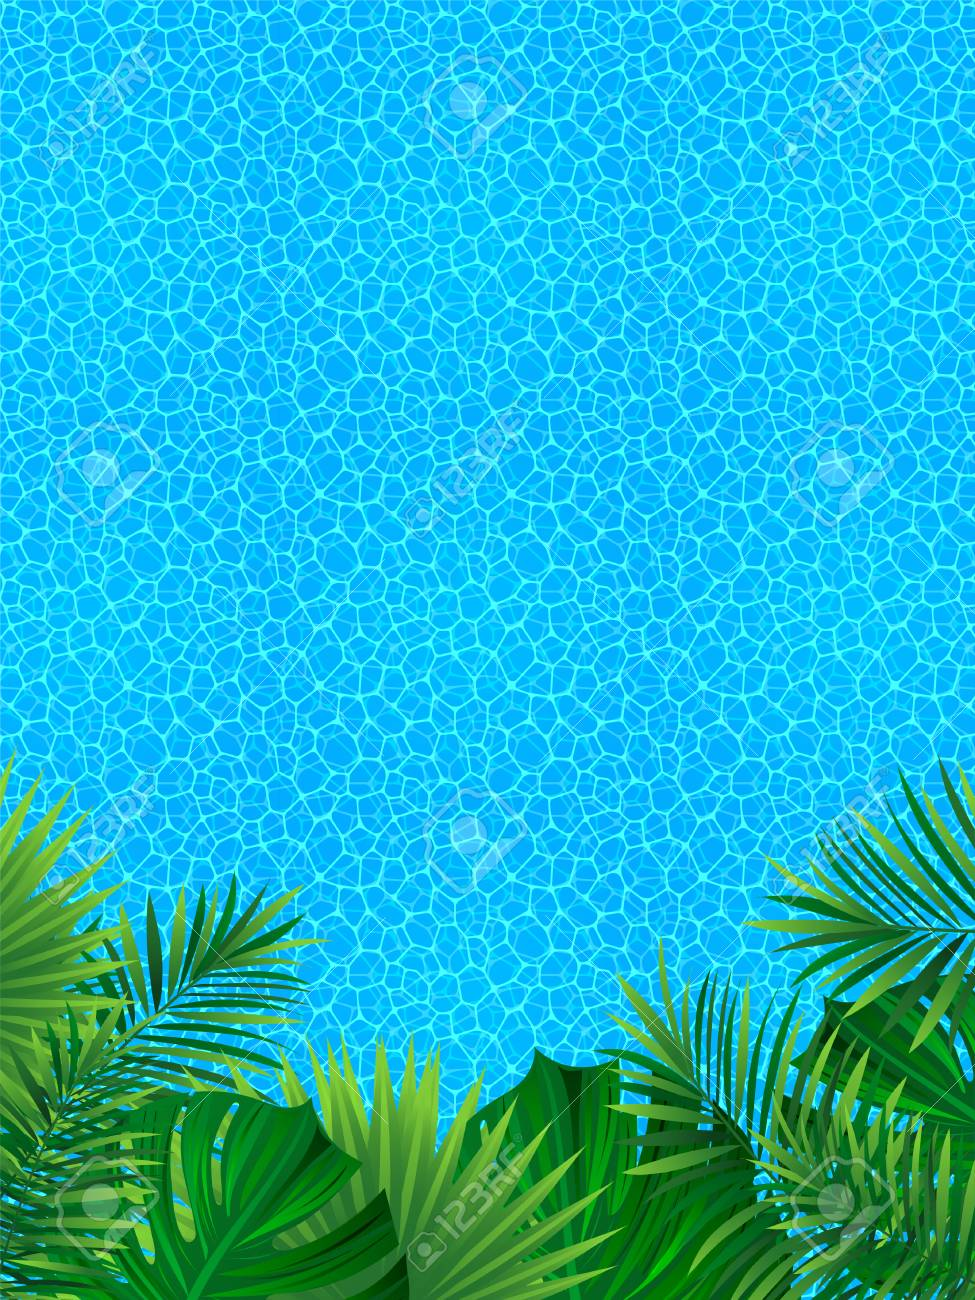 Tropical Landscape Vertical Border Frame Vector Illustration 975x1300